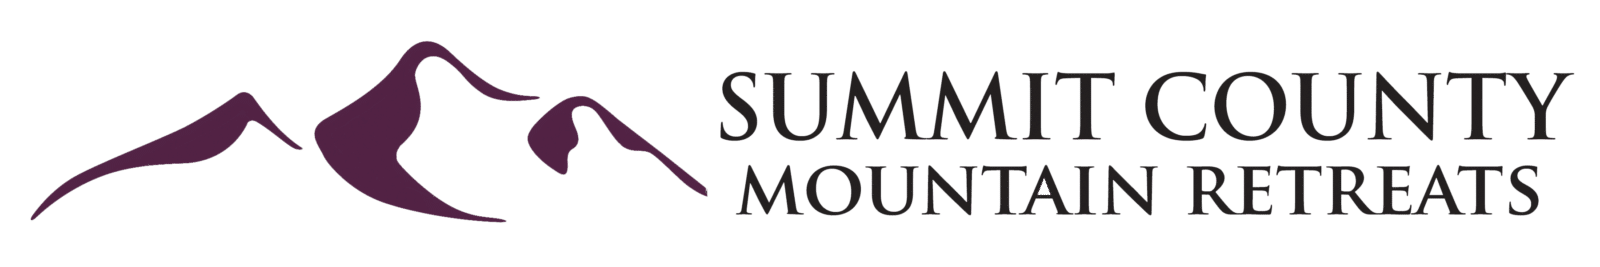 Summit County Mountain Retreats